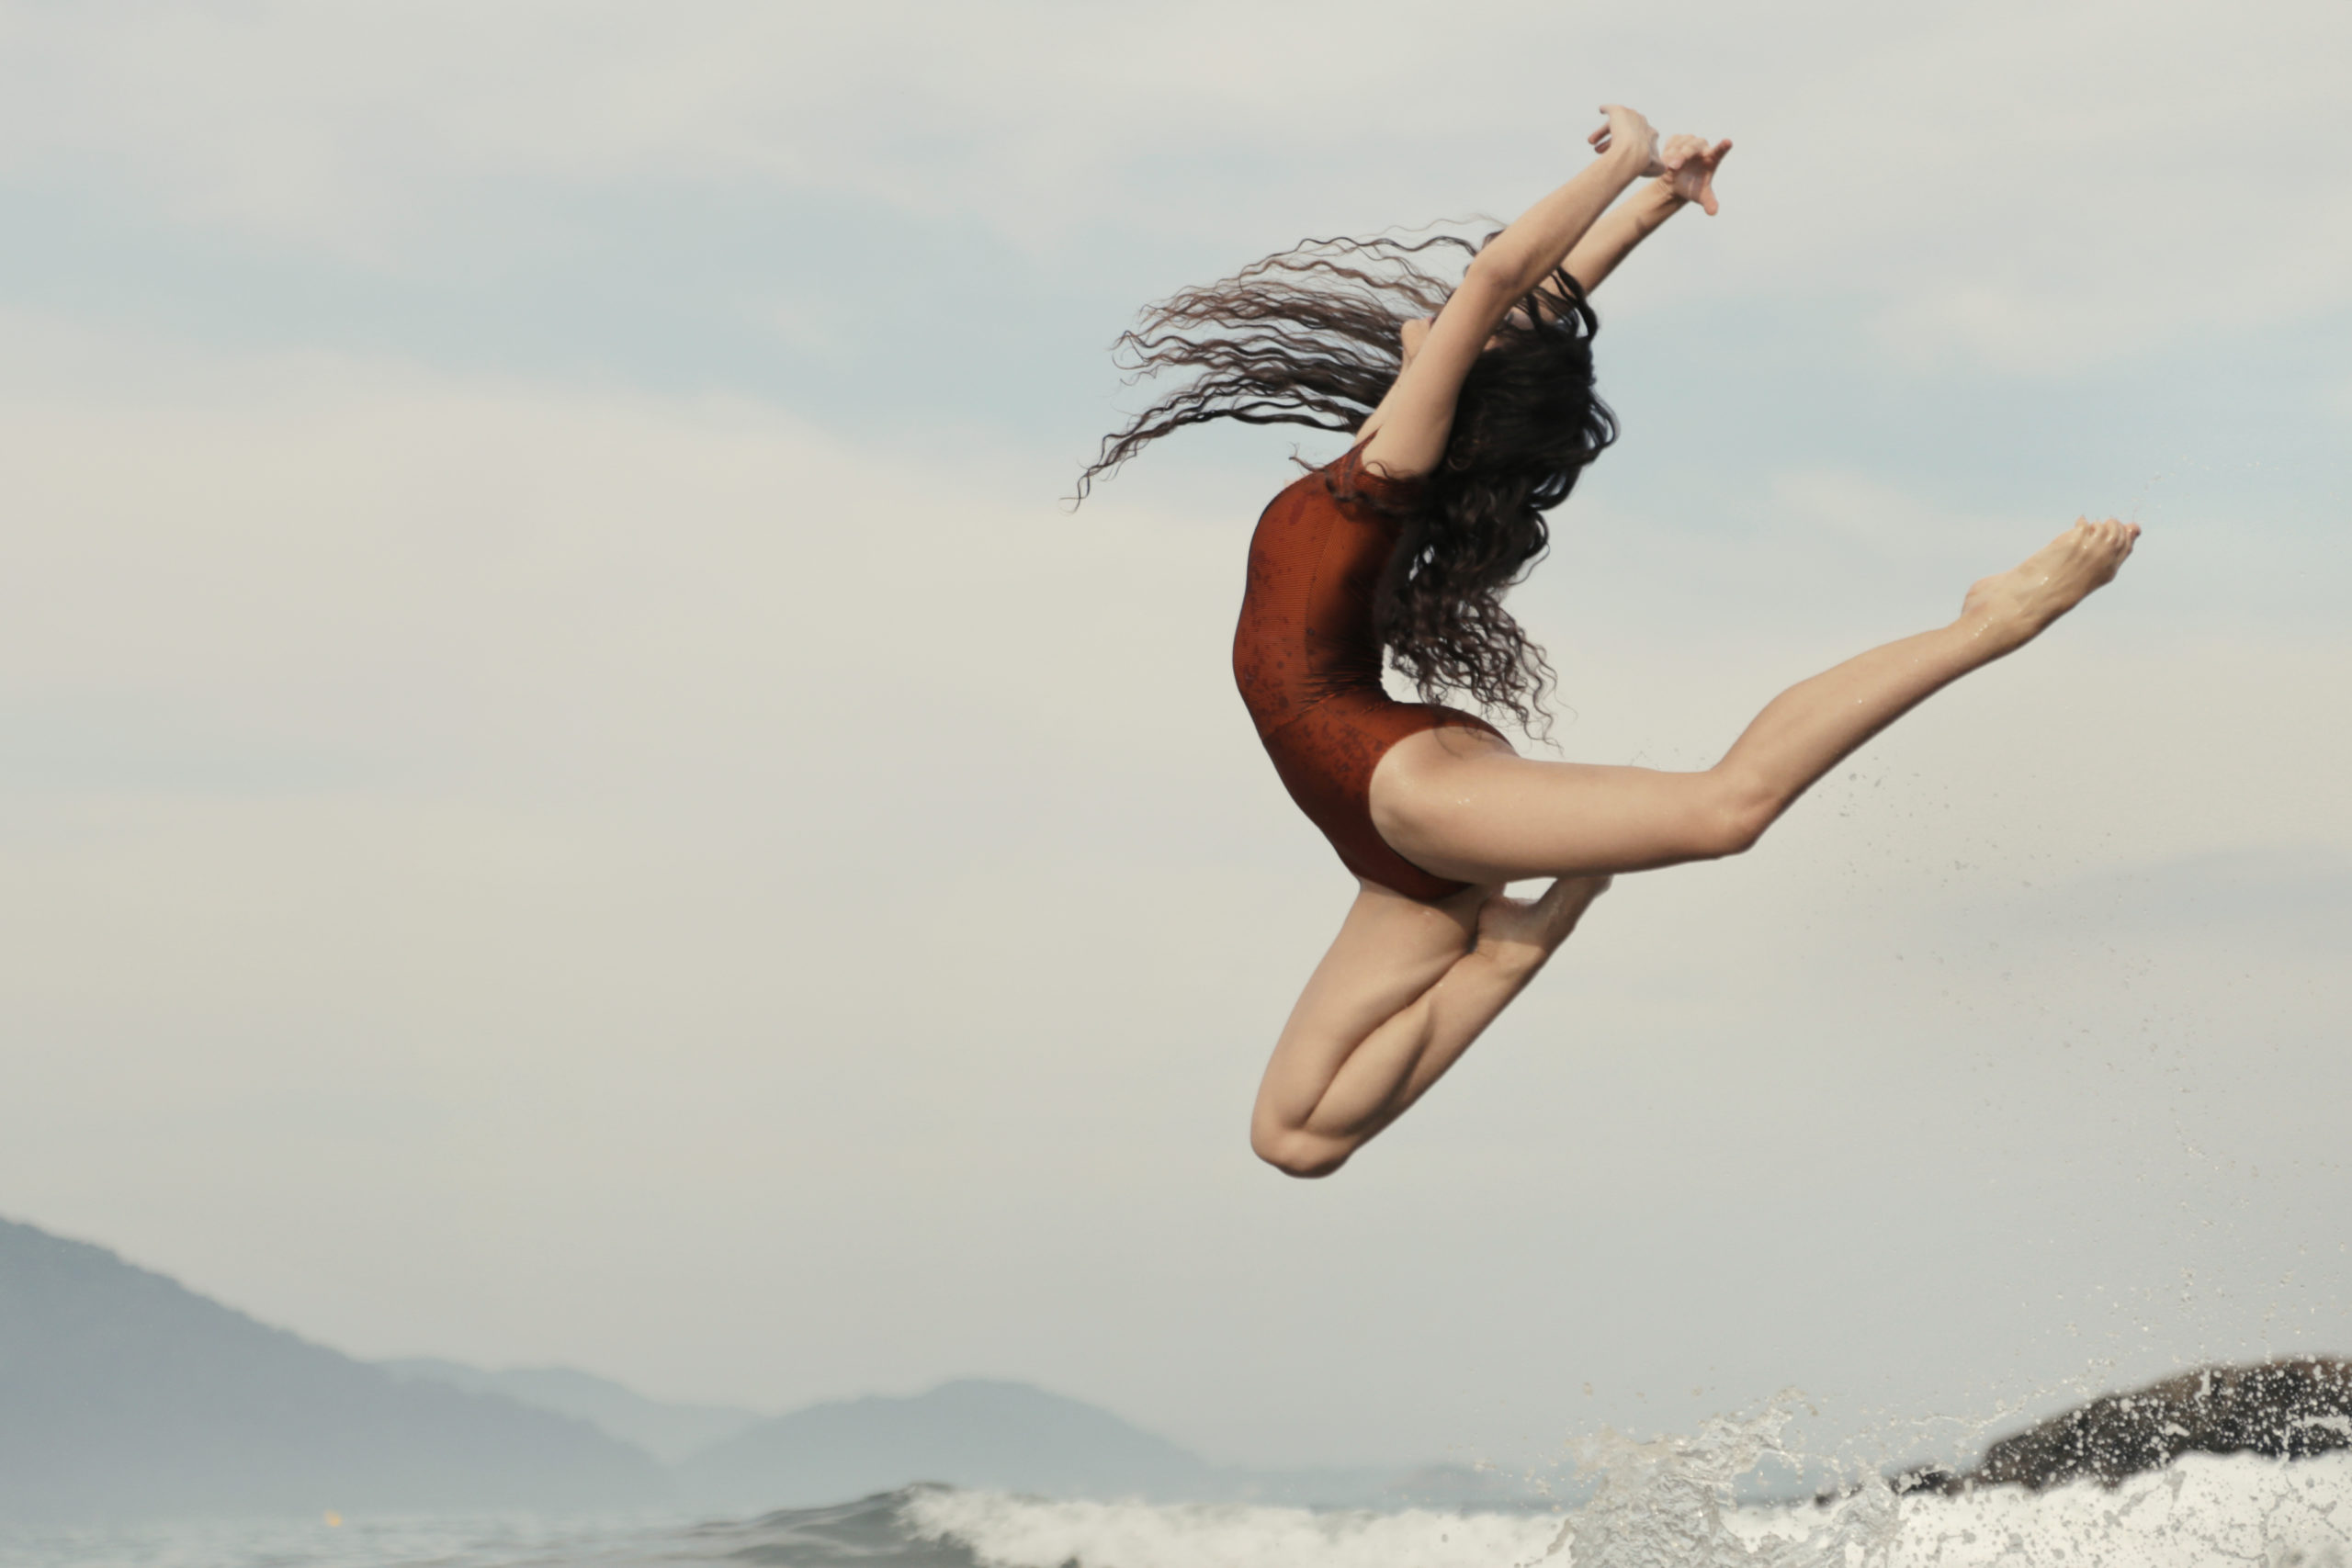 A ballerina in a bronze-colored leotard jumps in the ocean, tucking her right leg up and her kicking back leg in attitude. She arches back with her arms in high fifth and her with long, curly hair flying free.